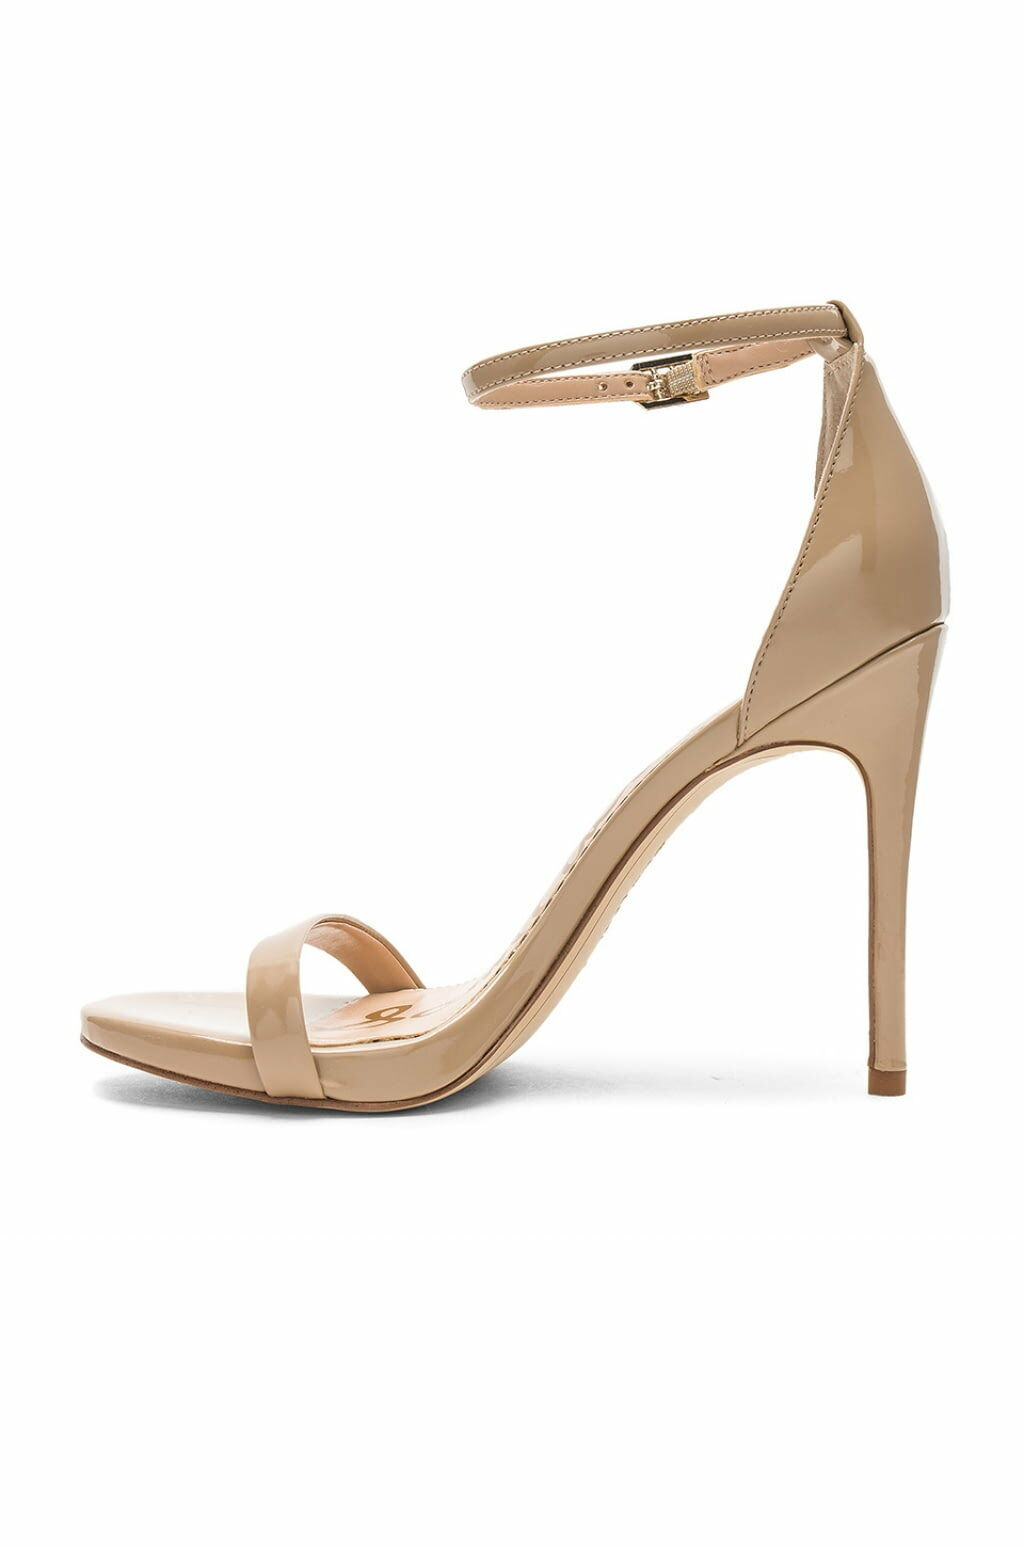 Sam Edelman NADYA Patent Leather Ankle Ankle Ankle Heel Sandal schuhe Classic Nude 10.5 New 69baf9